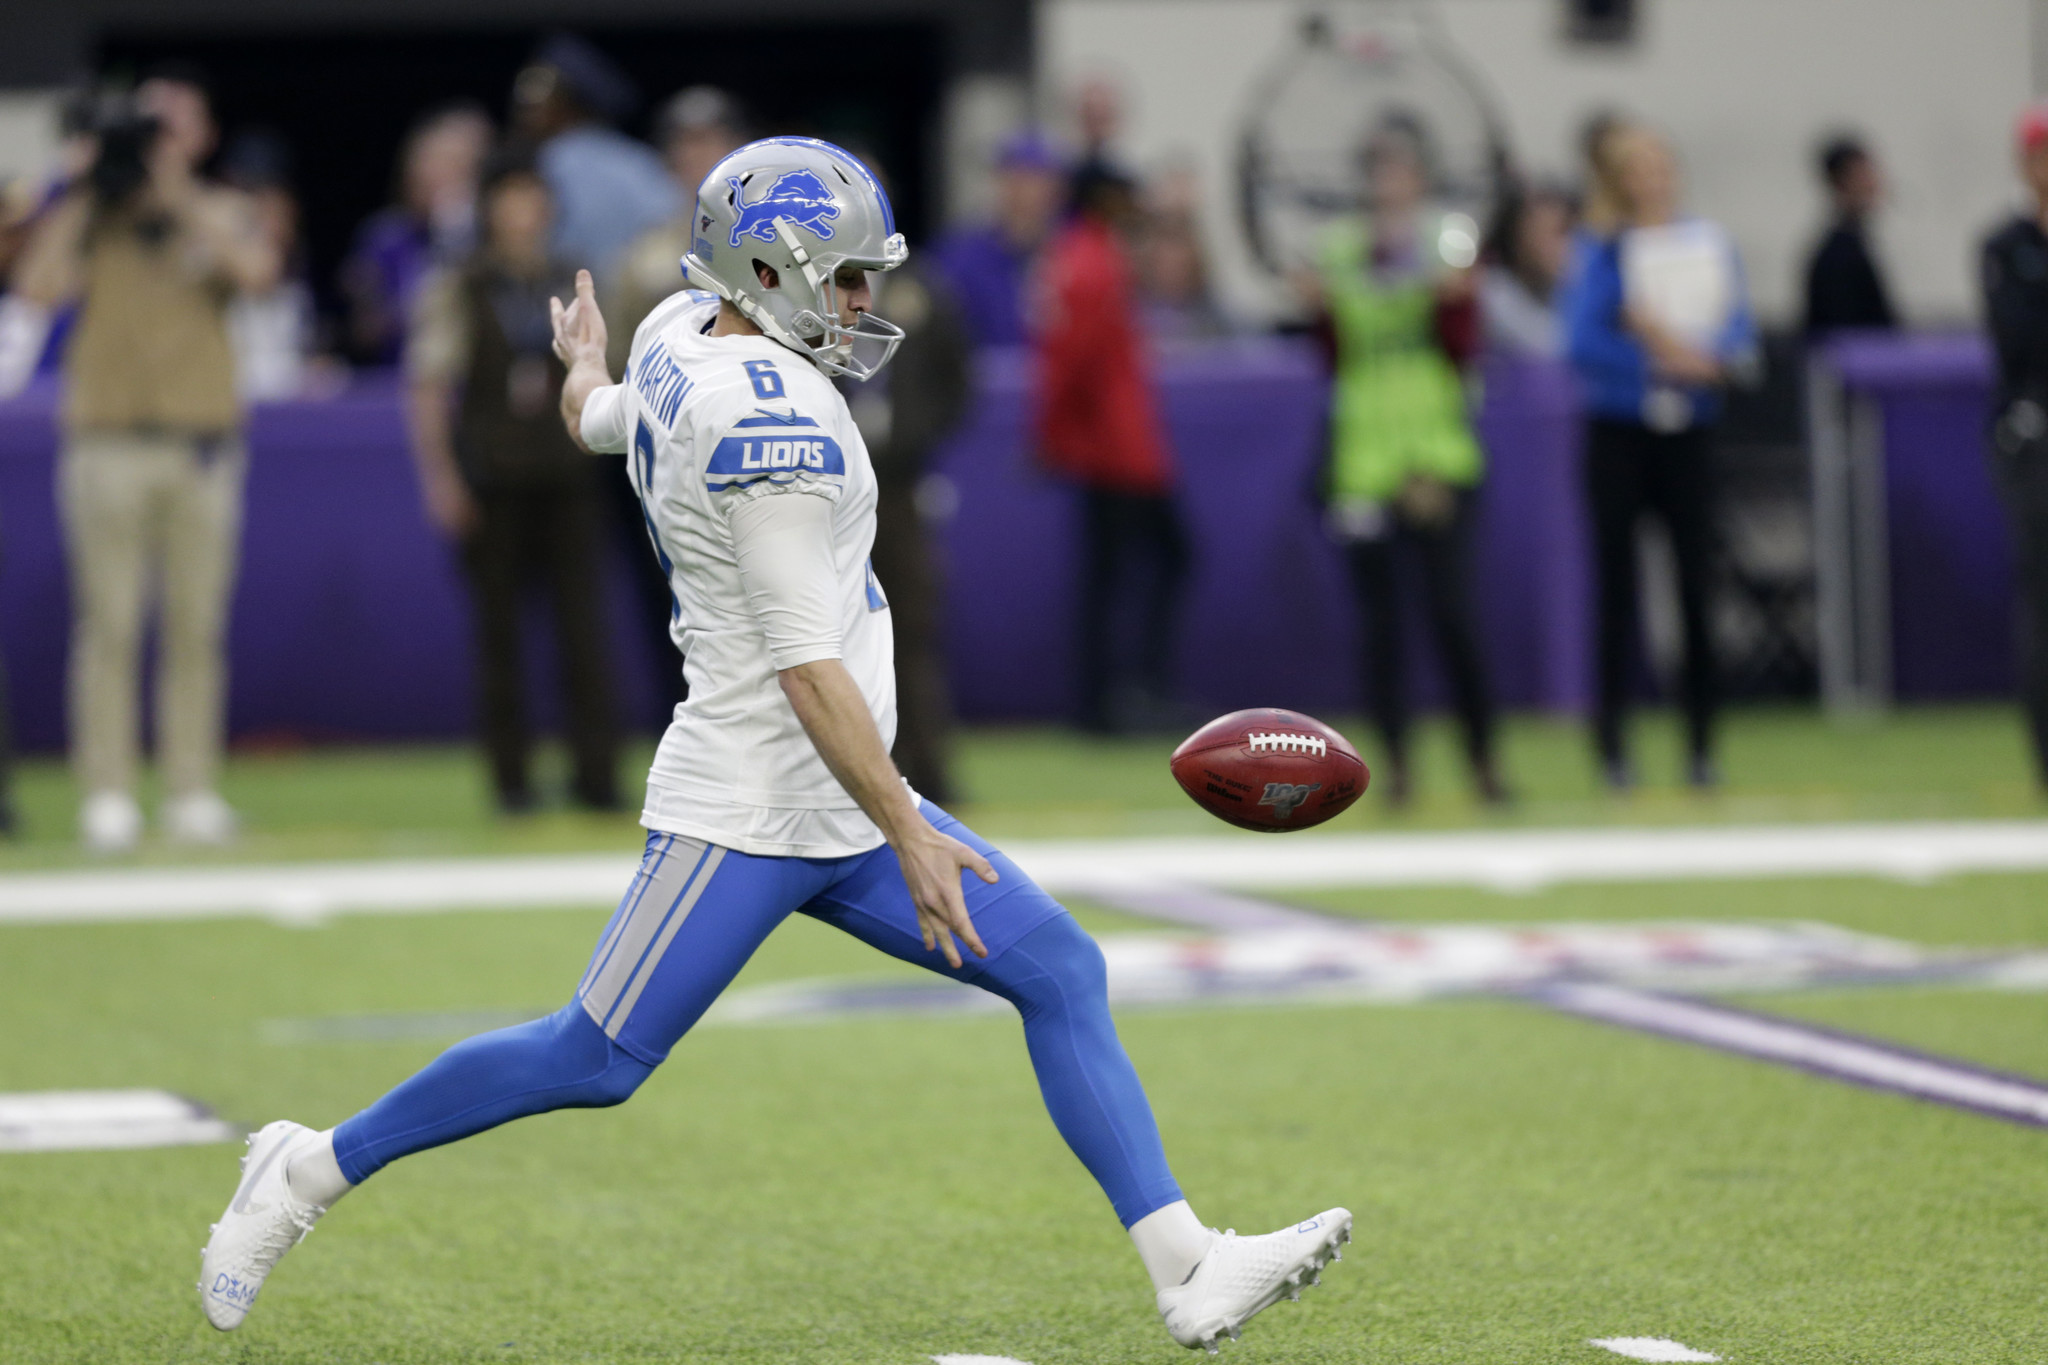 Jets wanted to sign former Lions punter Sam Martin before he went to Broncos: sources